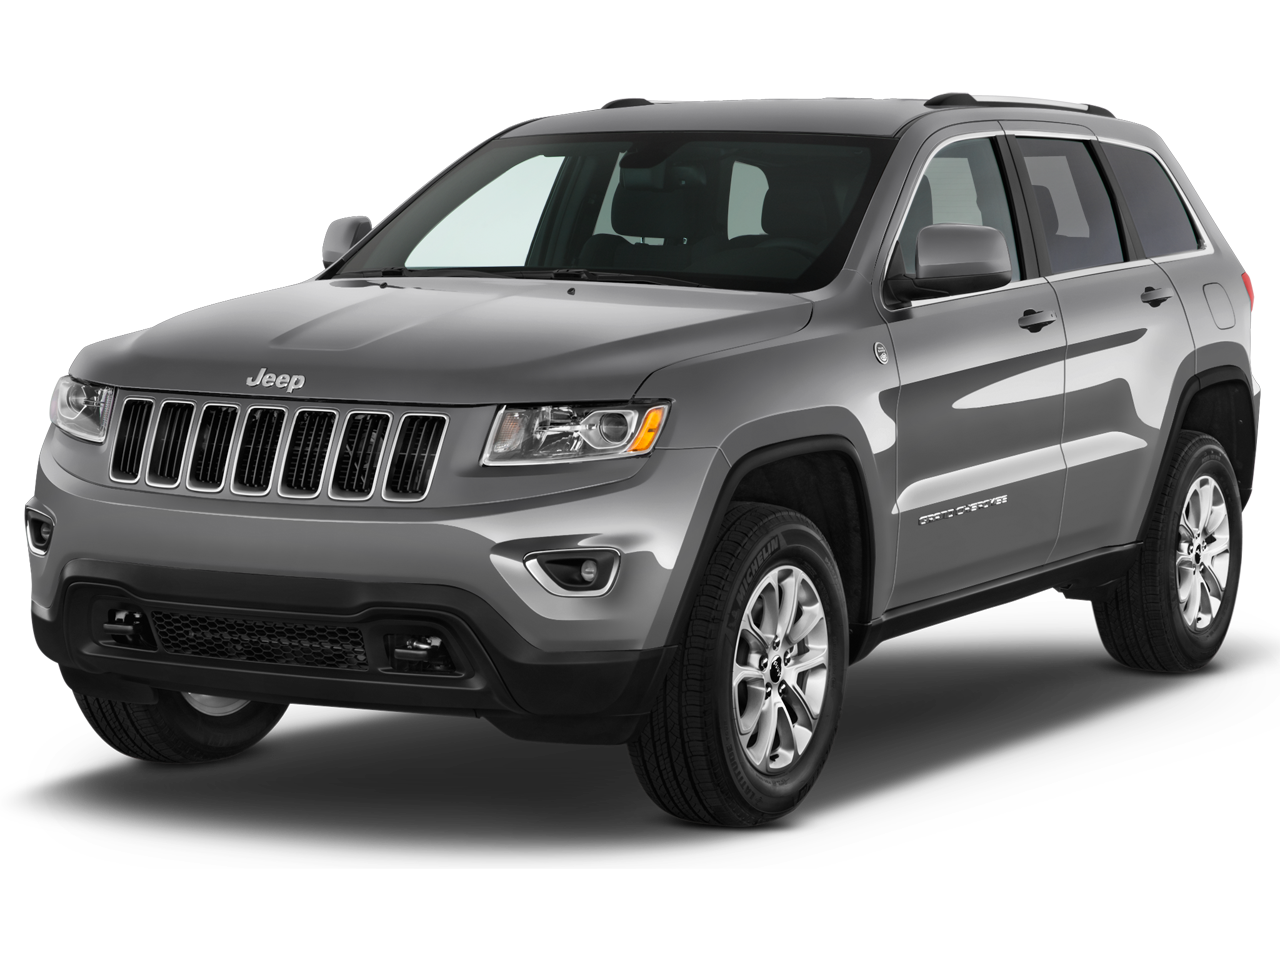 new 2016 jeep grand cherokee laredo near castle rock co medved autoplex. Black Bedroom Furniture Sets. Home Design Ideas